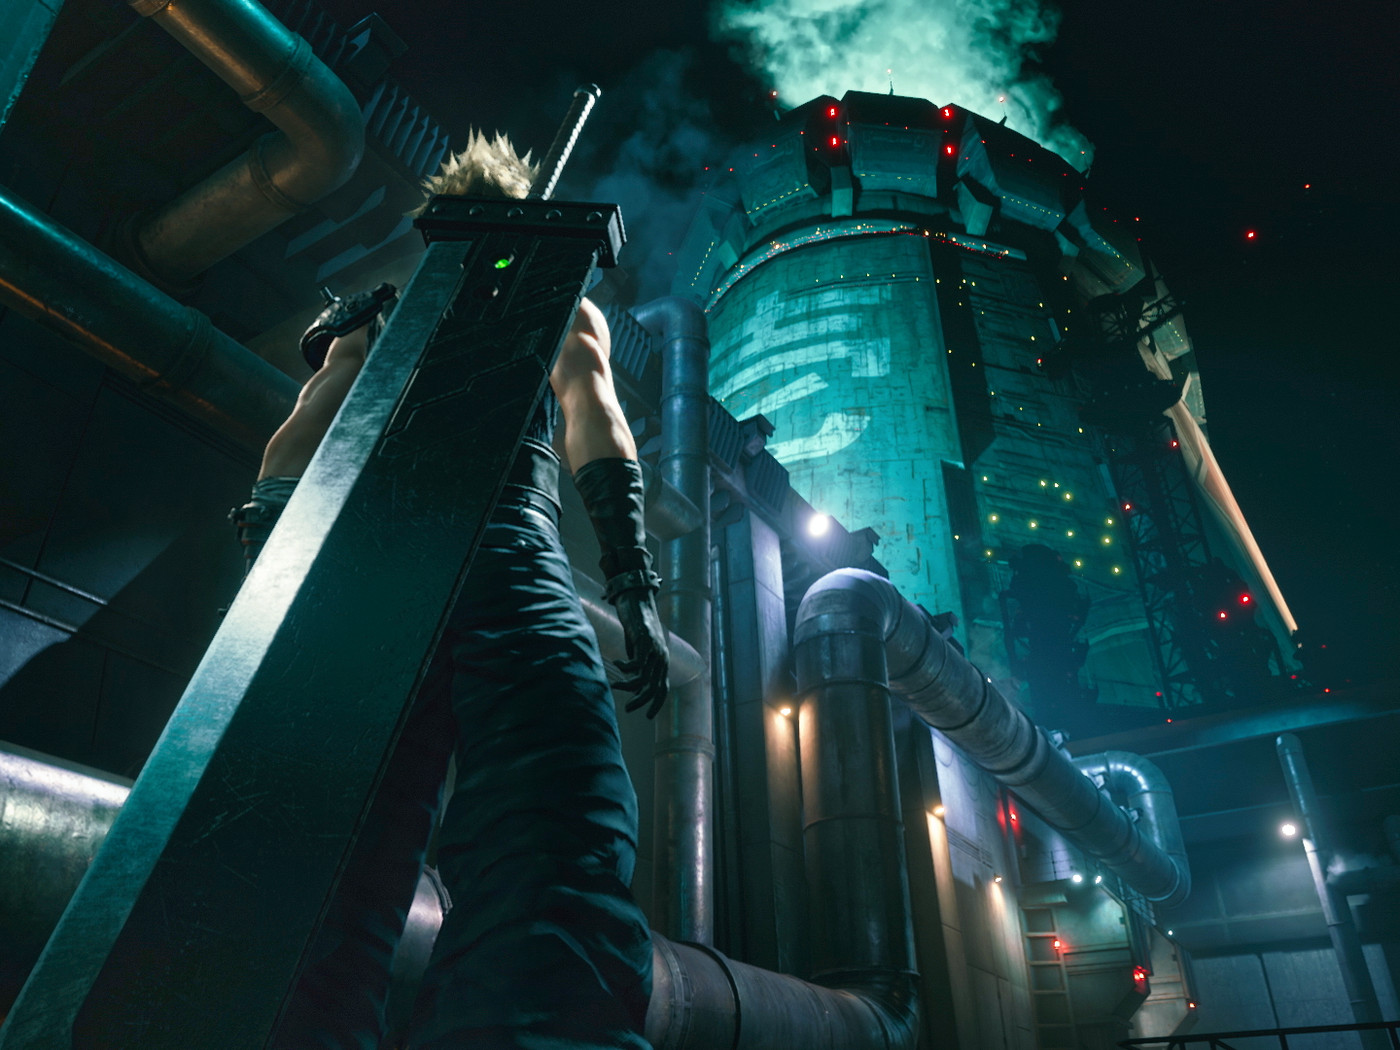 Final Fantasy Vii Remake For Ps4 Is Cheaper Than Ever The Verge